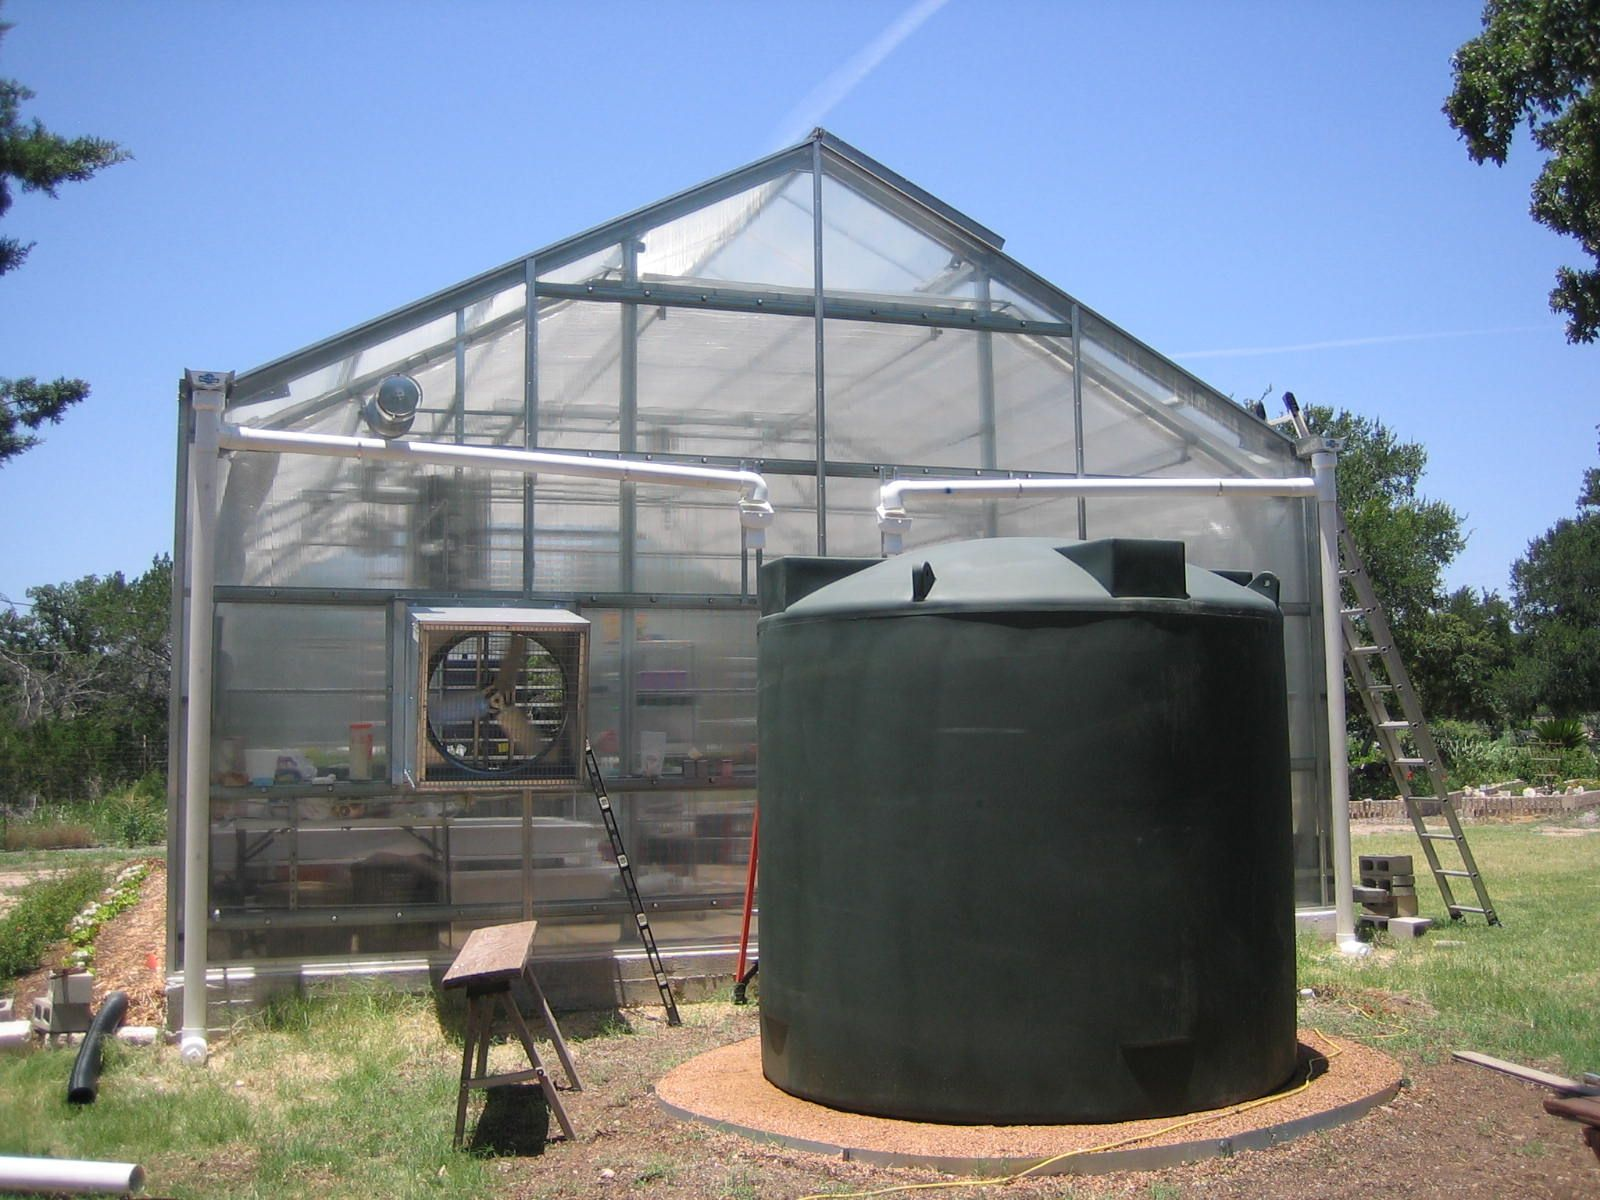 2500 Gallon Poly-Mart Rainwater Tank collecting of of both